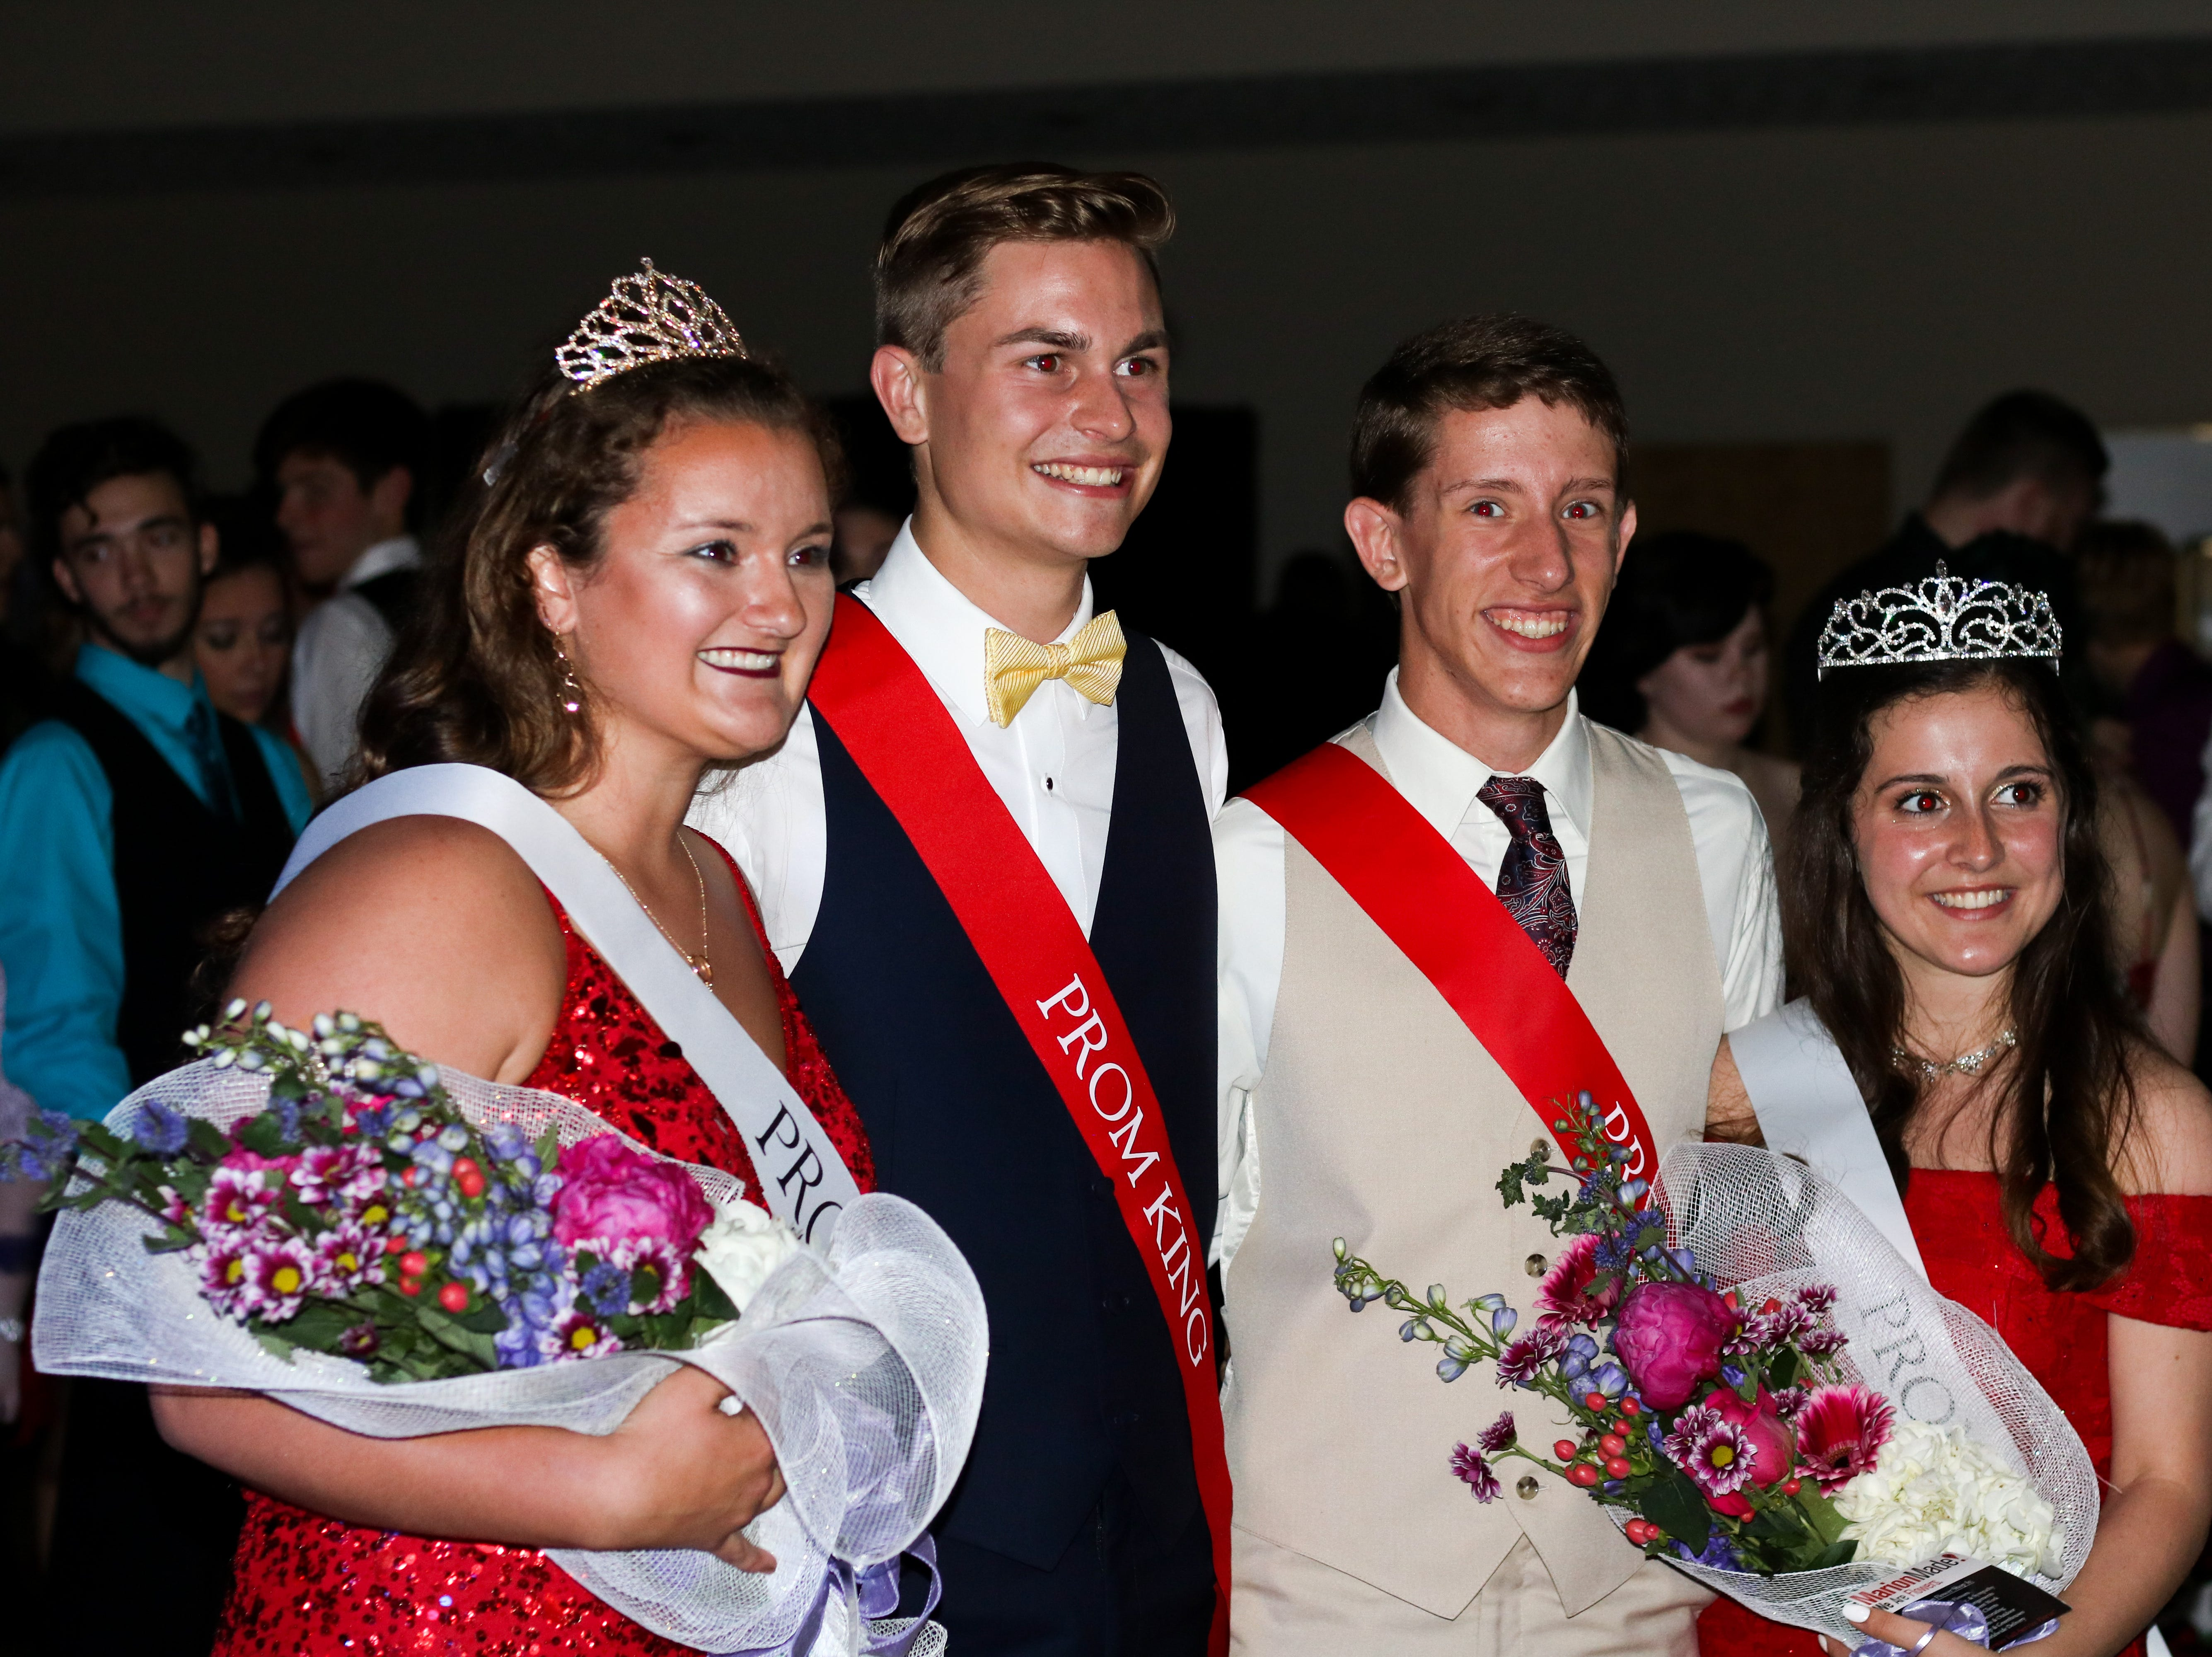 From left to right : Pleasant Prom Queen Grace Davis, Prom King Wyatt Wells, Prom Prince Zach Abraham and Prom Princess Bridgette Murphy pose after being crowned at All Occasions in Waldo on Saturday May 4, 2019.